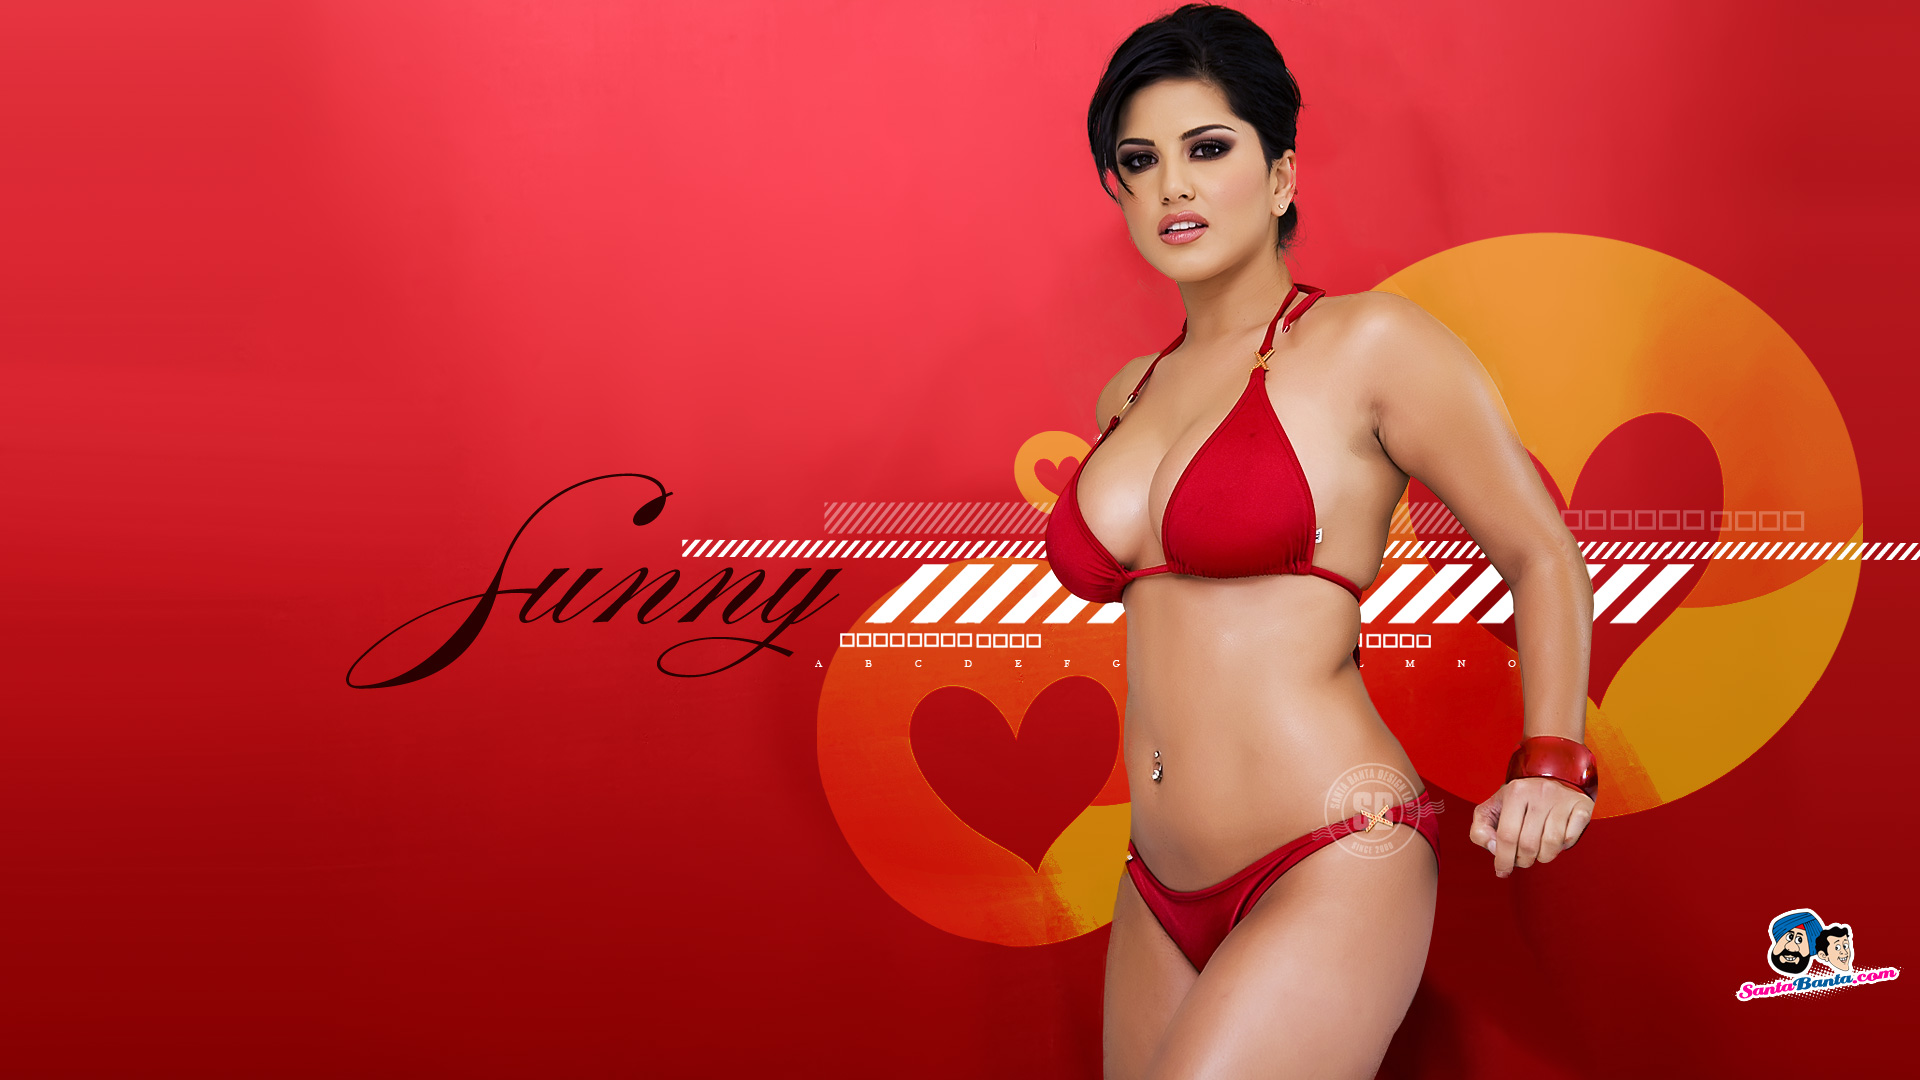 Sunny Leone Latest Hot Wallpapers Download Full Hd 1080 -8734